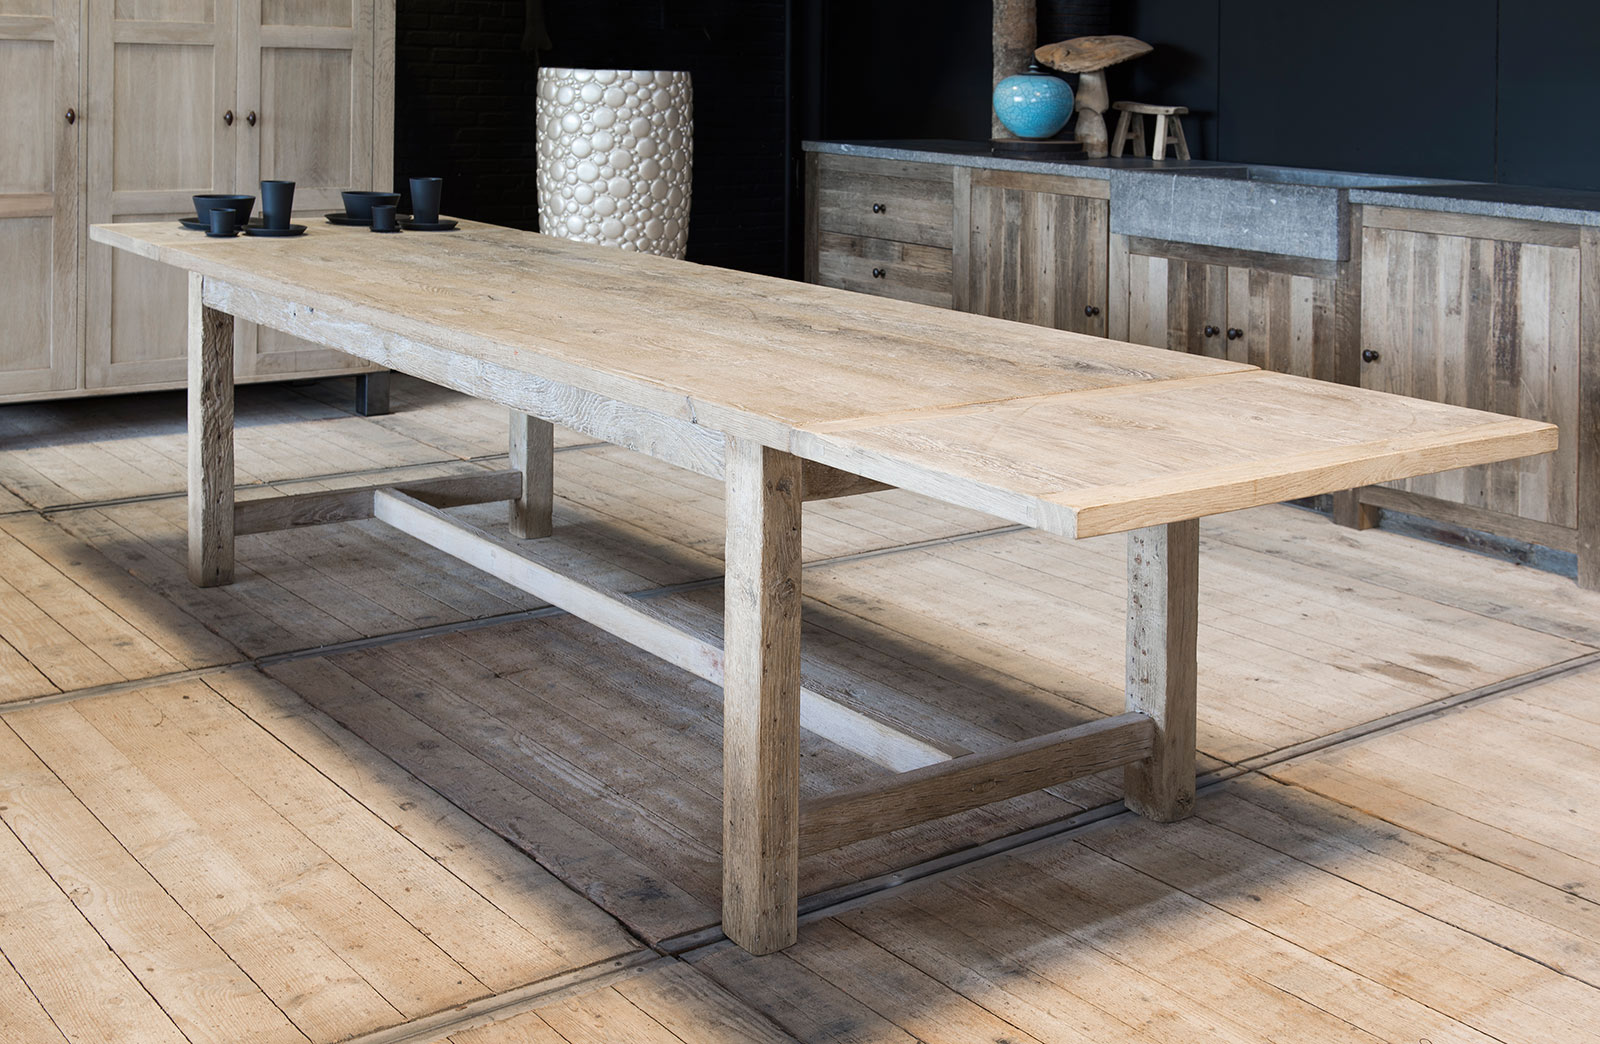 SOLID WOODEN TABLE MADE TO MEASURE